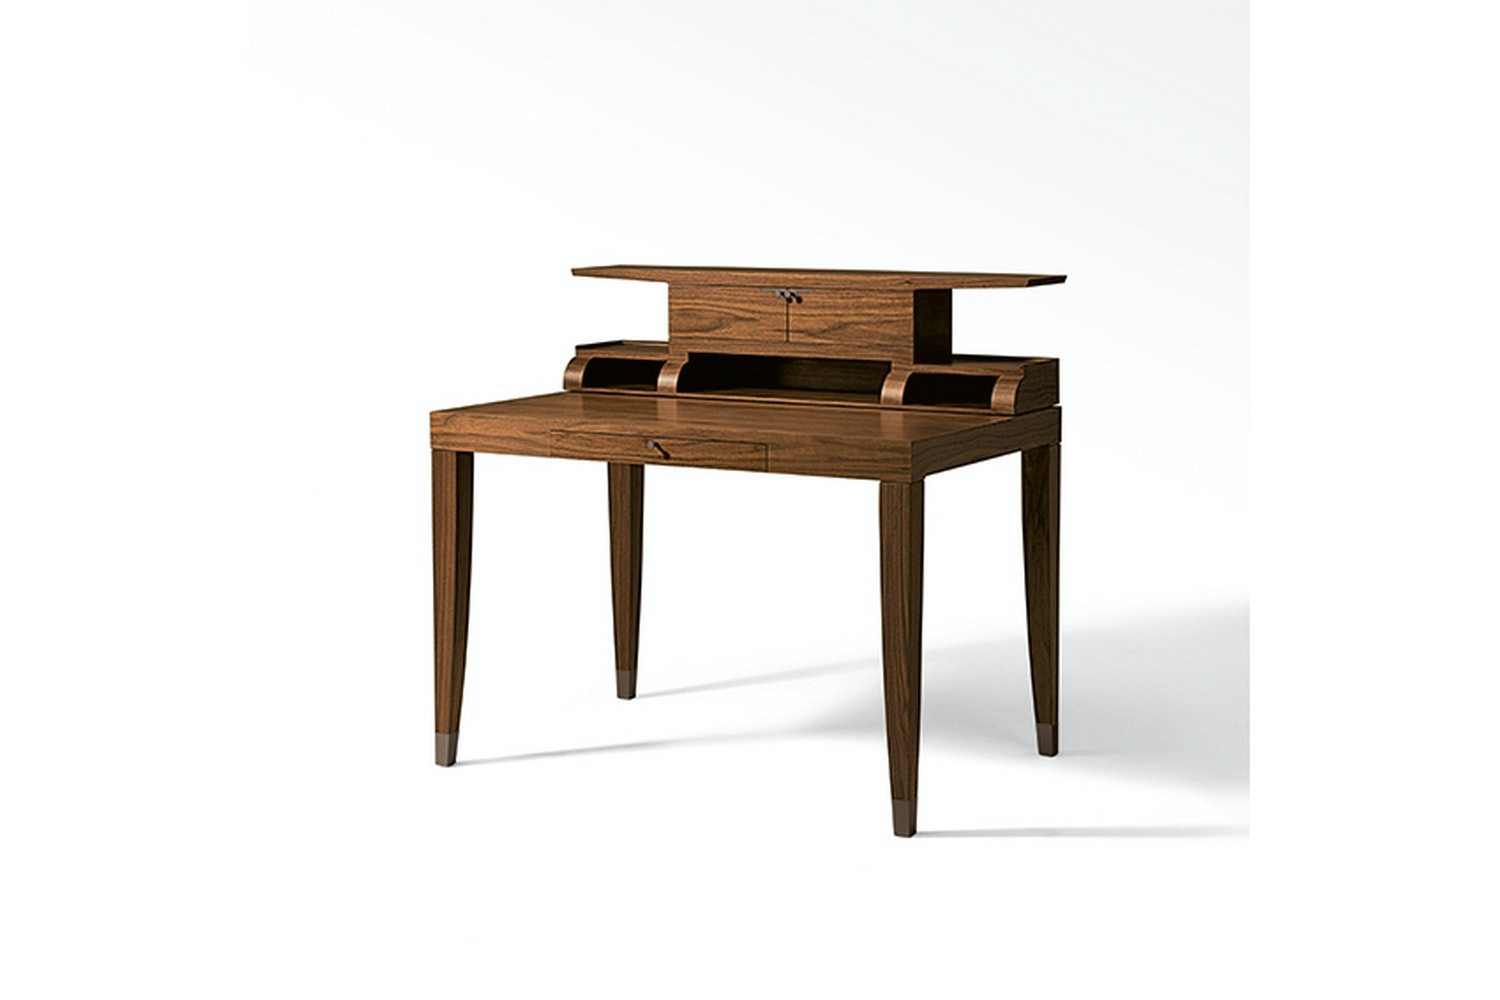 Epi 2012 Desk by Chi Wing Lo for Giorgetti